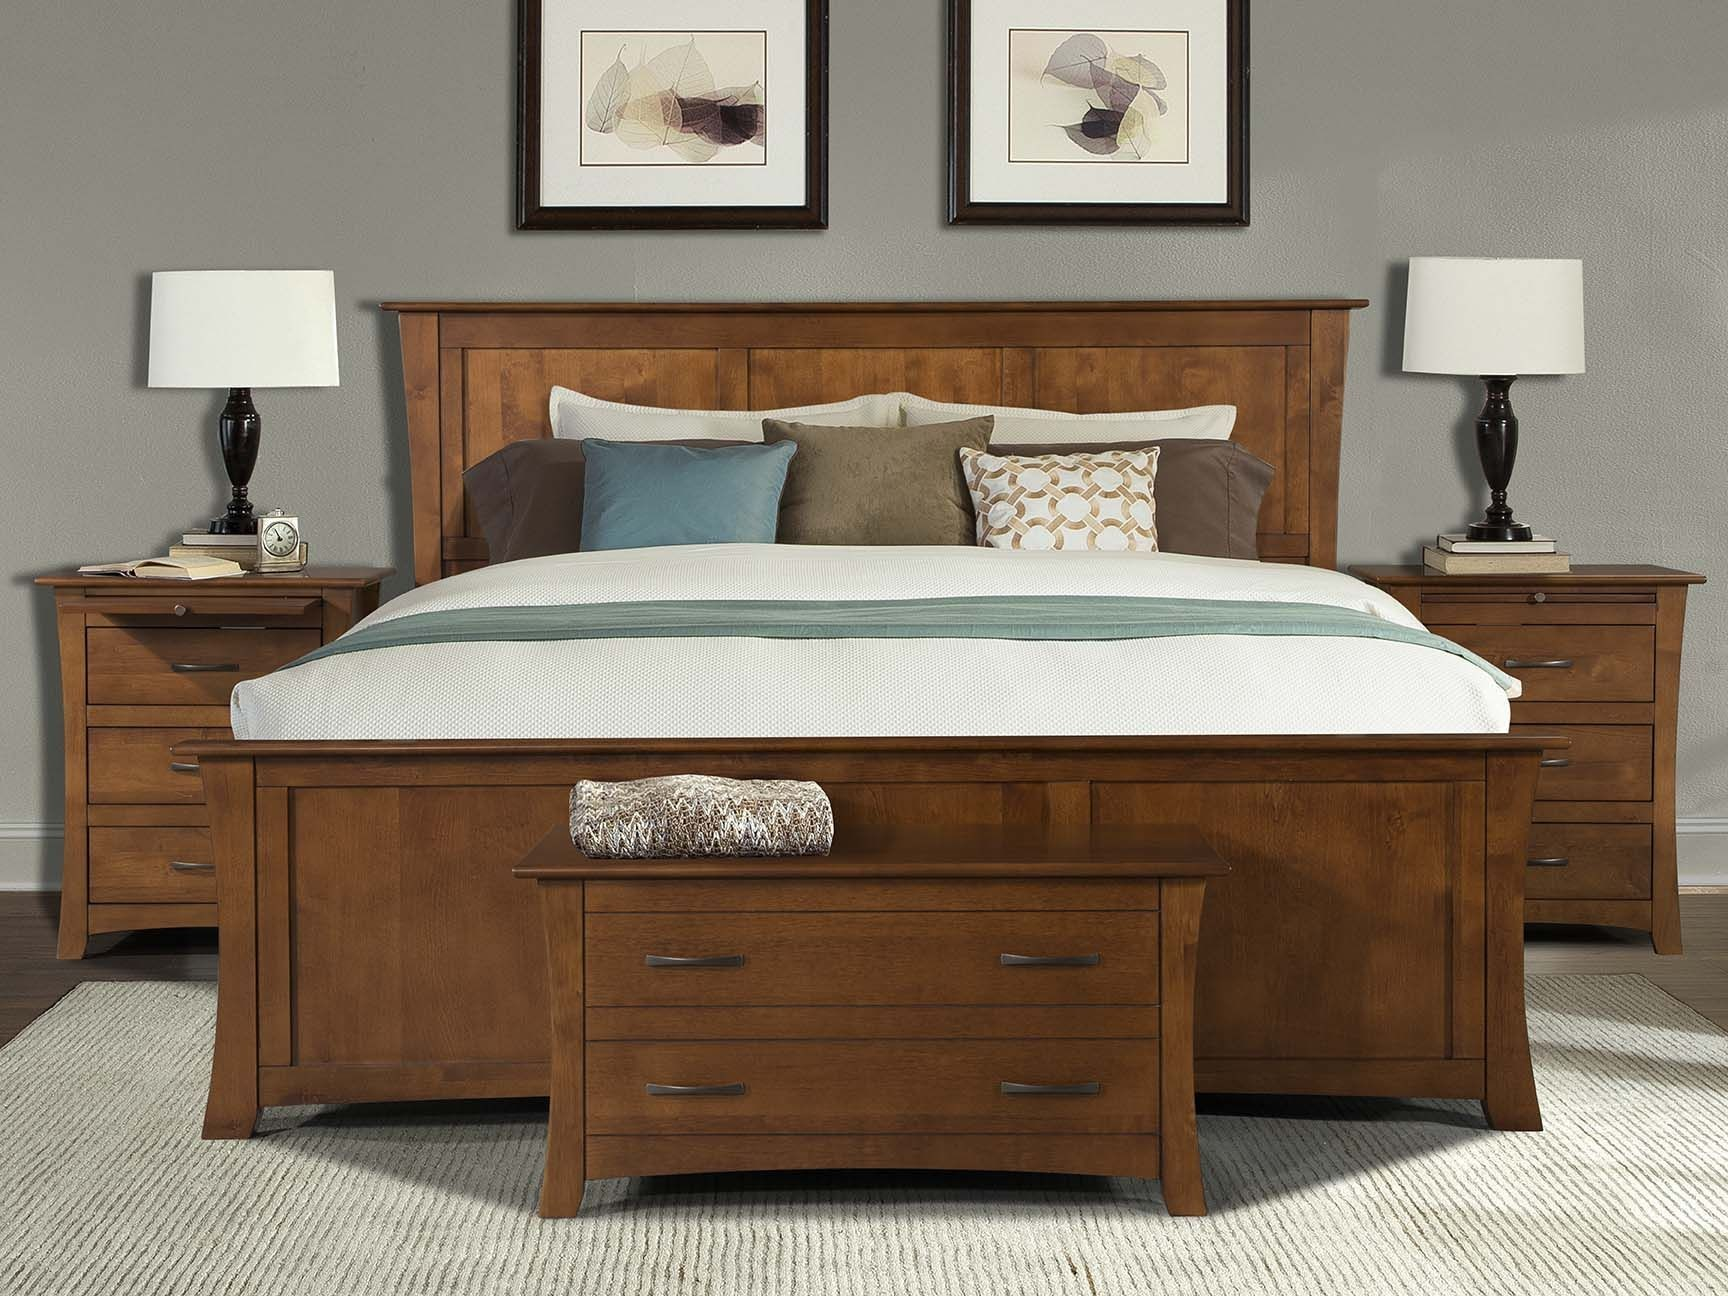 grant park pecan panel bedroom set from a america coleman furniture